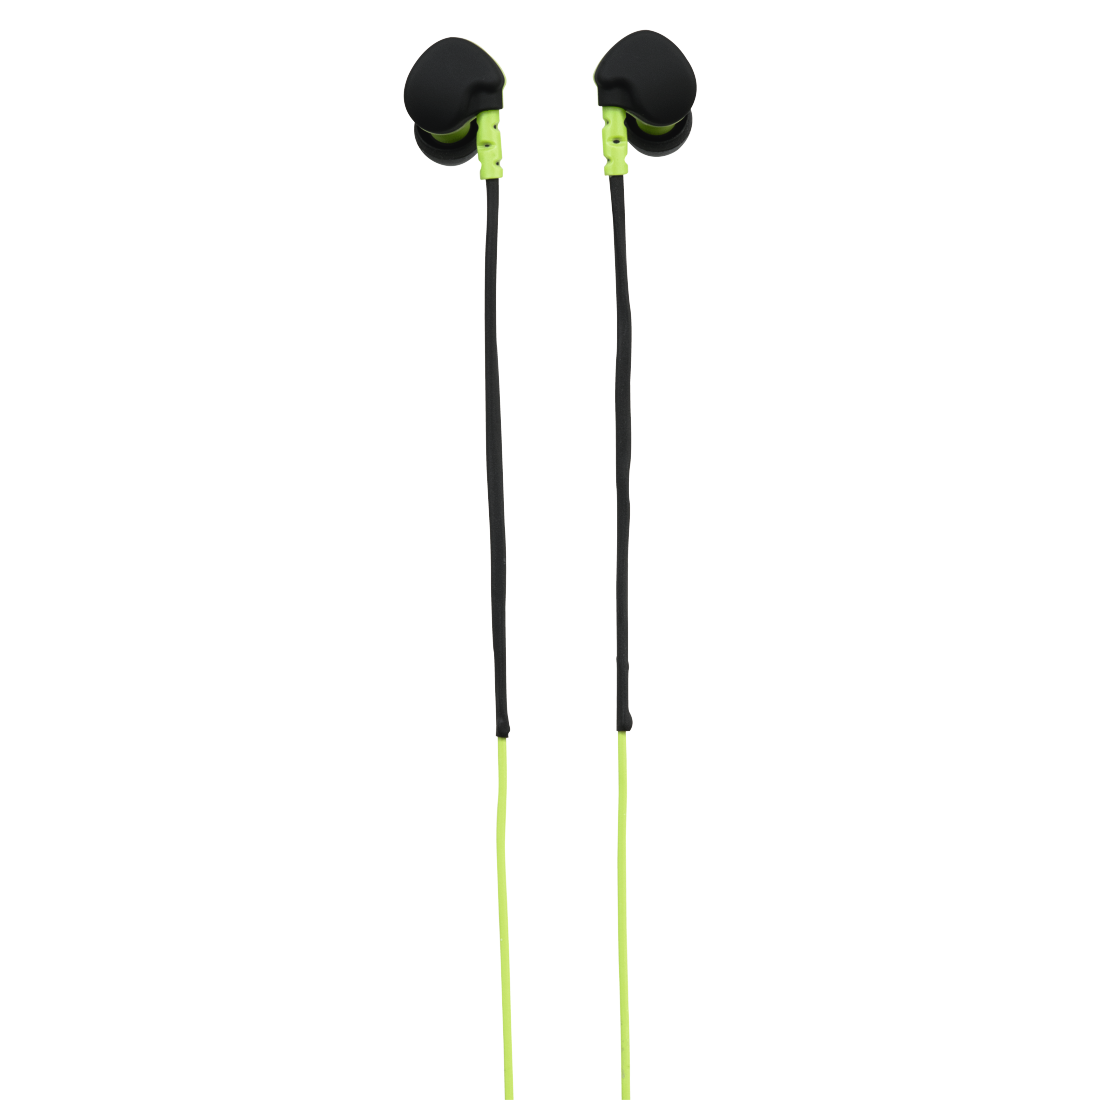 abx2 High-Res Image 2 - Hama, Run Clip-On Sport Earphones, black/green